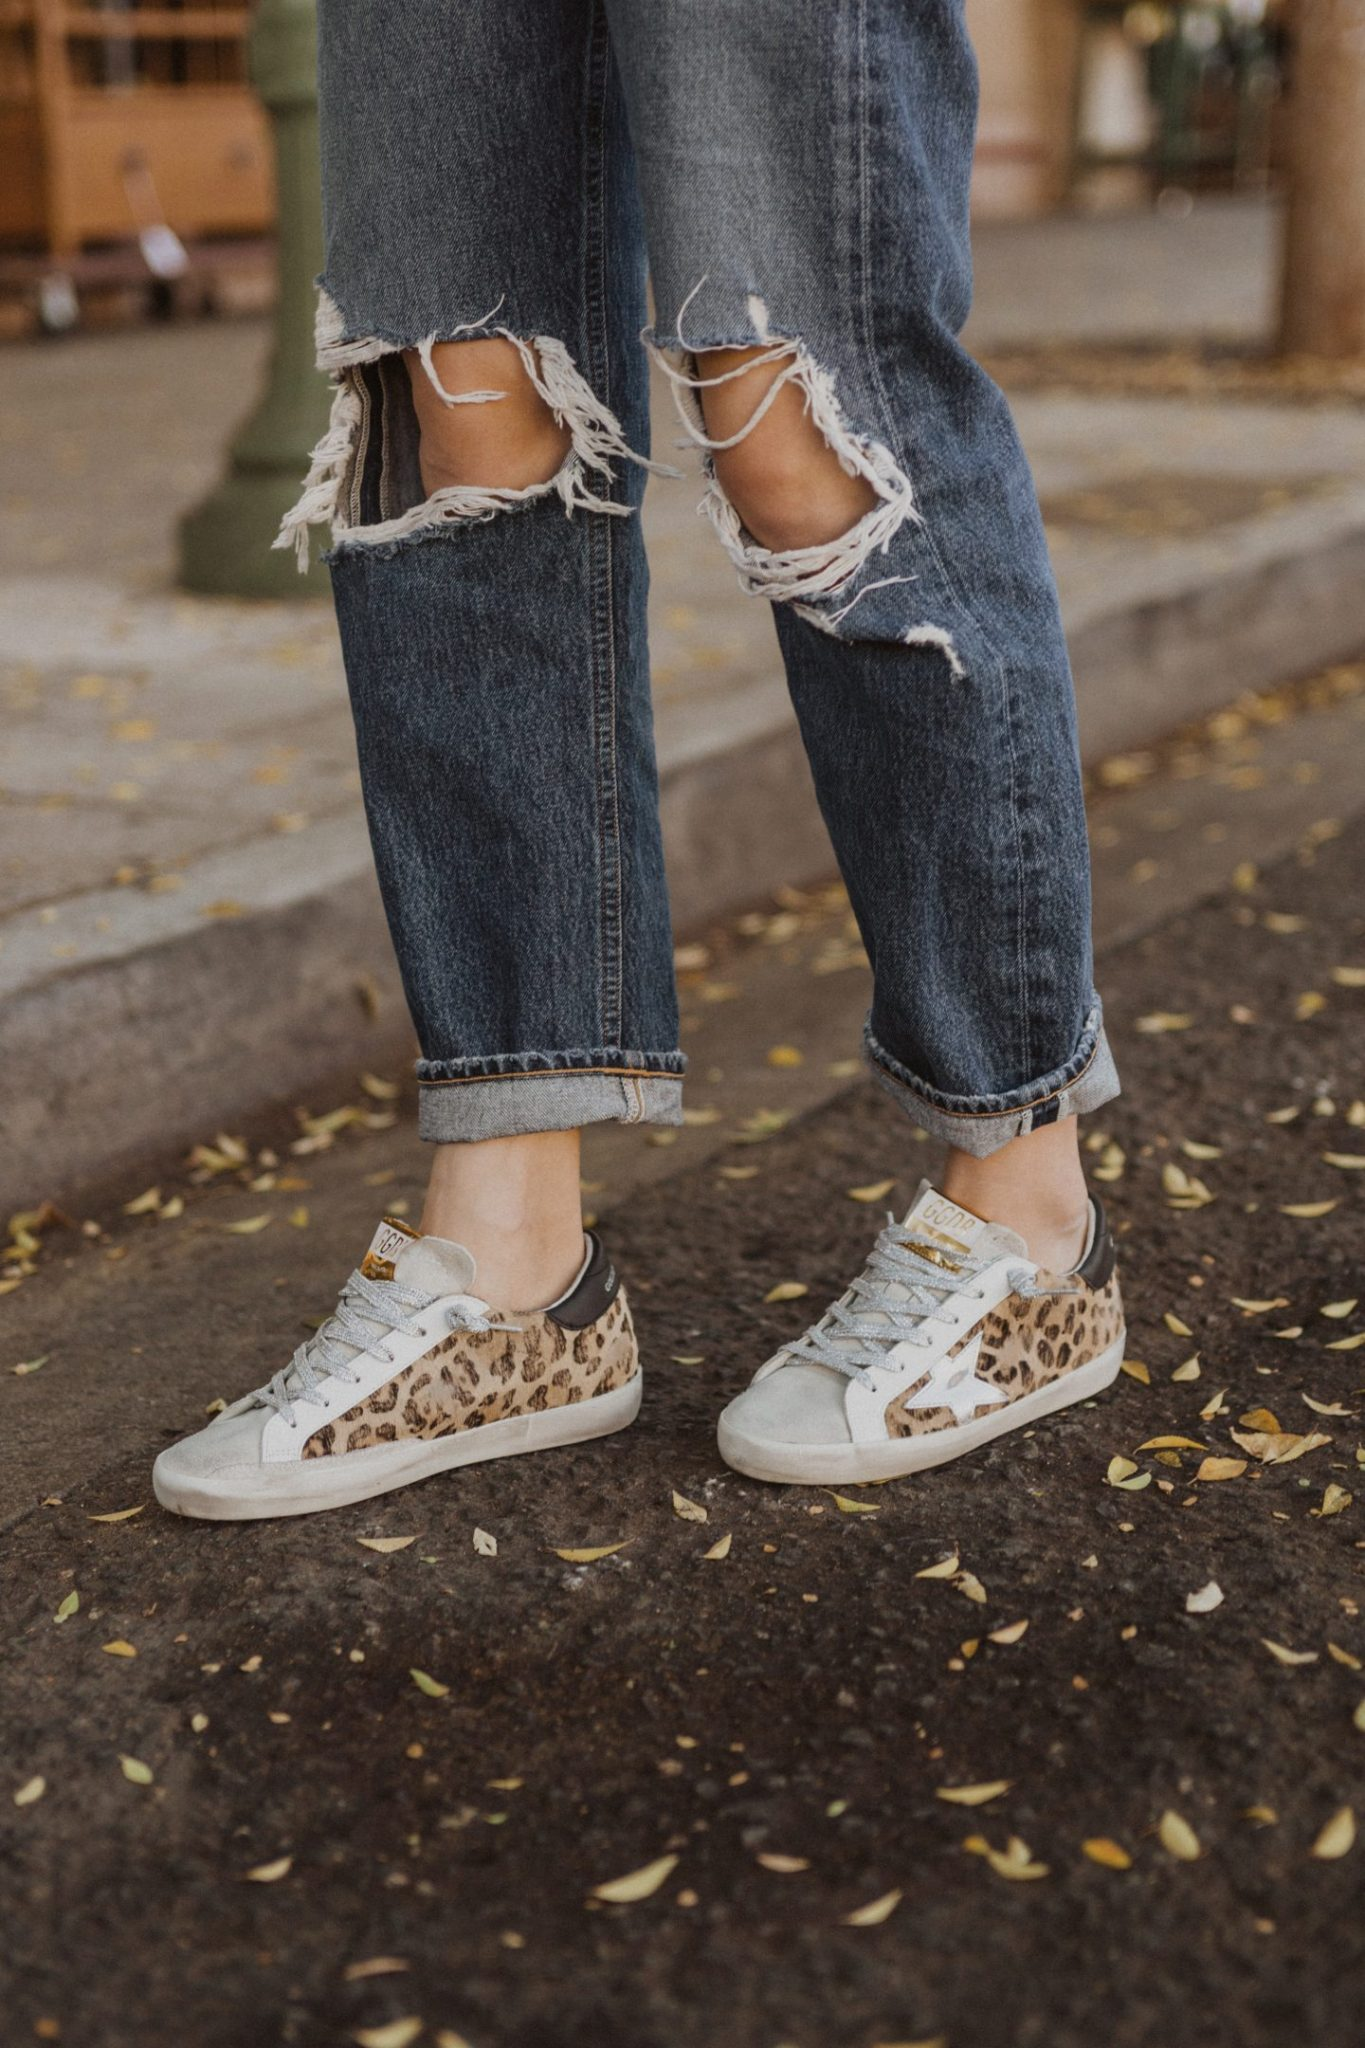 Golden Goose Sneakers by popular San Diego fashion blog, Navy Grace: image of a woman wearing a pair of Golden Goose distressed Superstar sneakers. Golden Goose Sneakers by popular San Diego fashion blog, Navy Grace: image of a woman wearing a pair of Golden Goose leopard print sneakers and 90s Mid Rise Loose Fit  AGOLDE brand jeans.